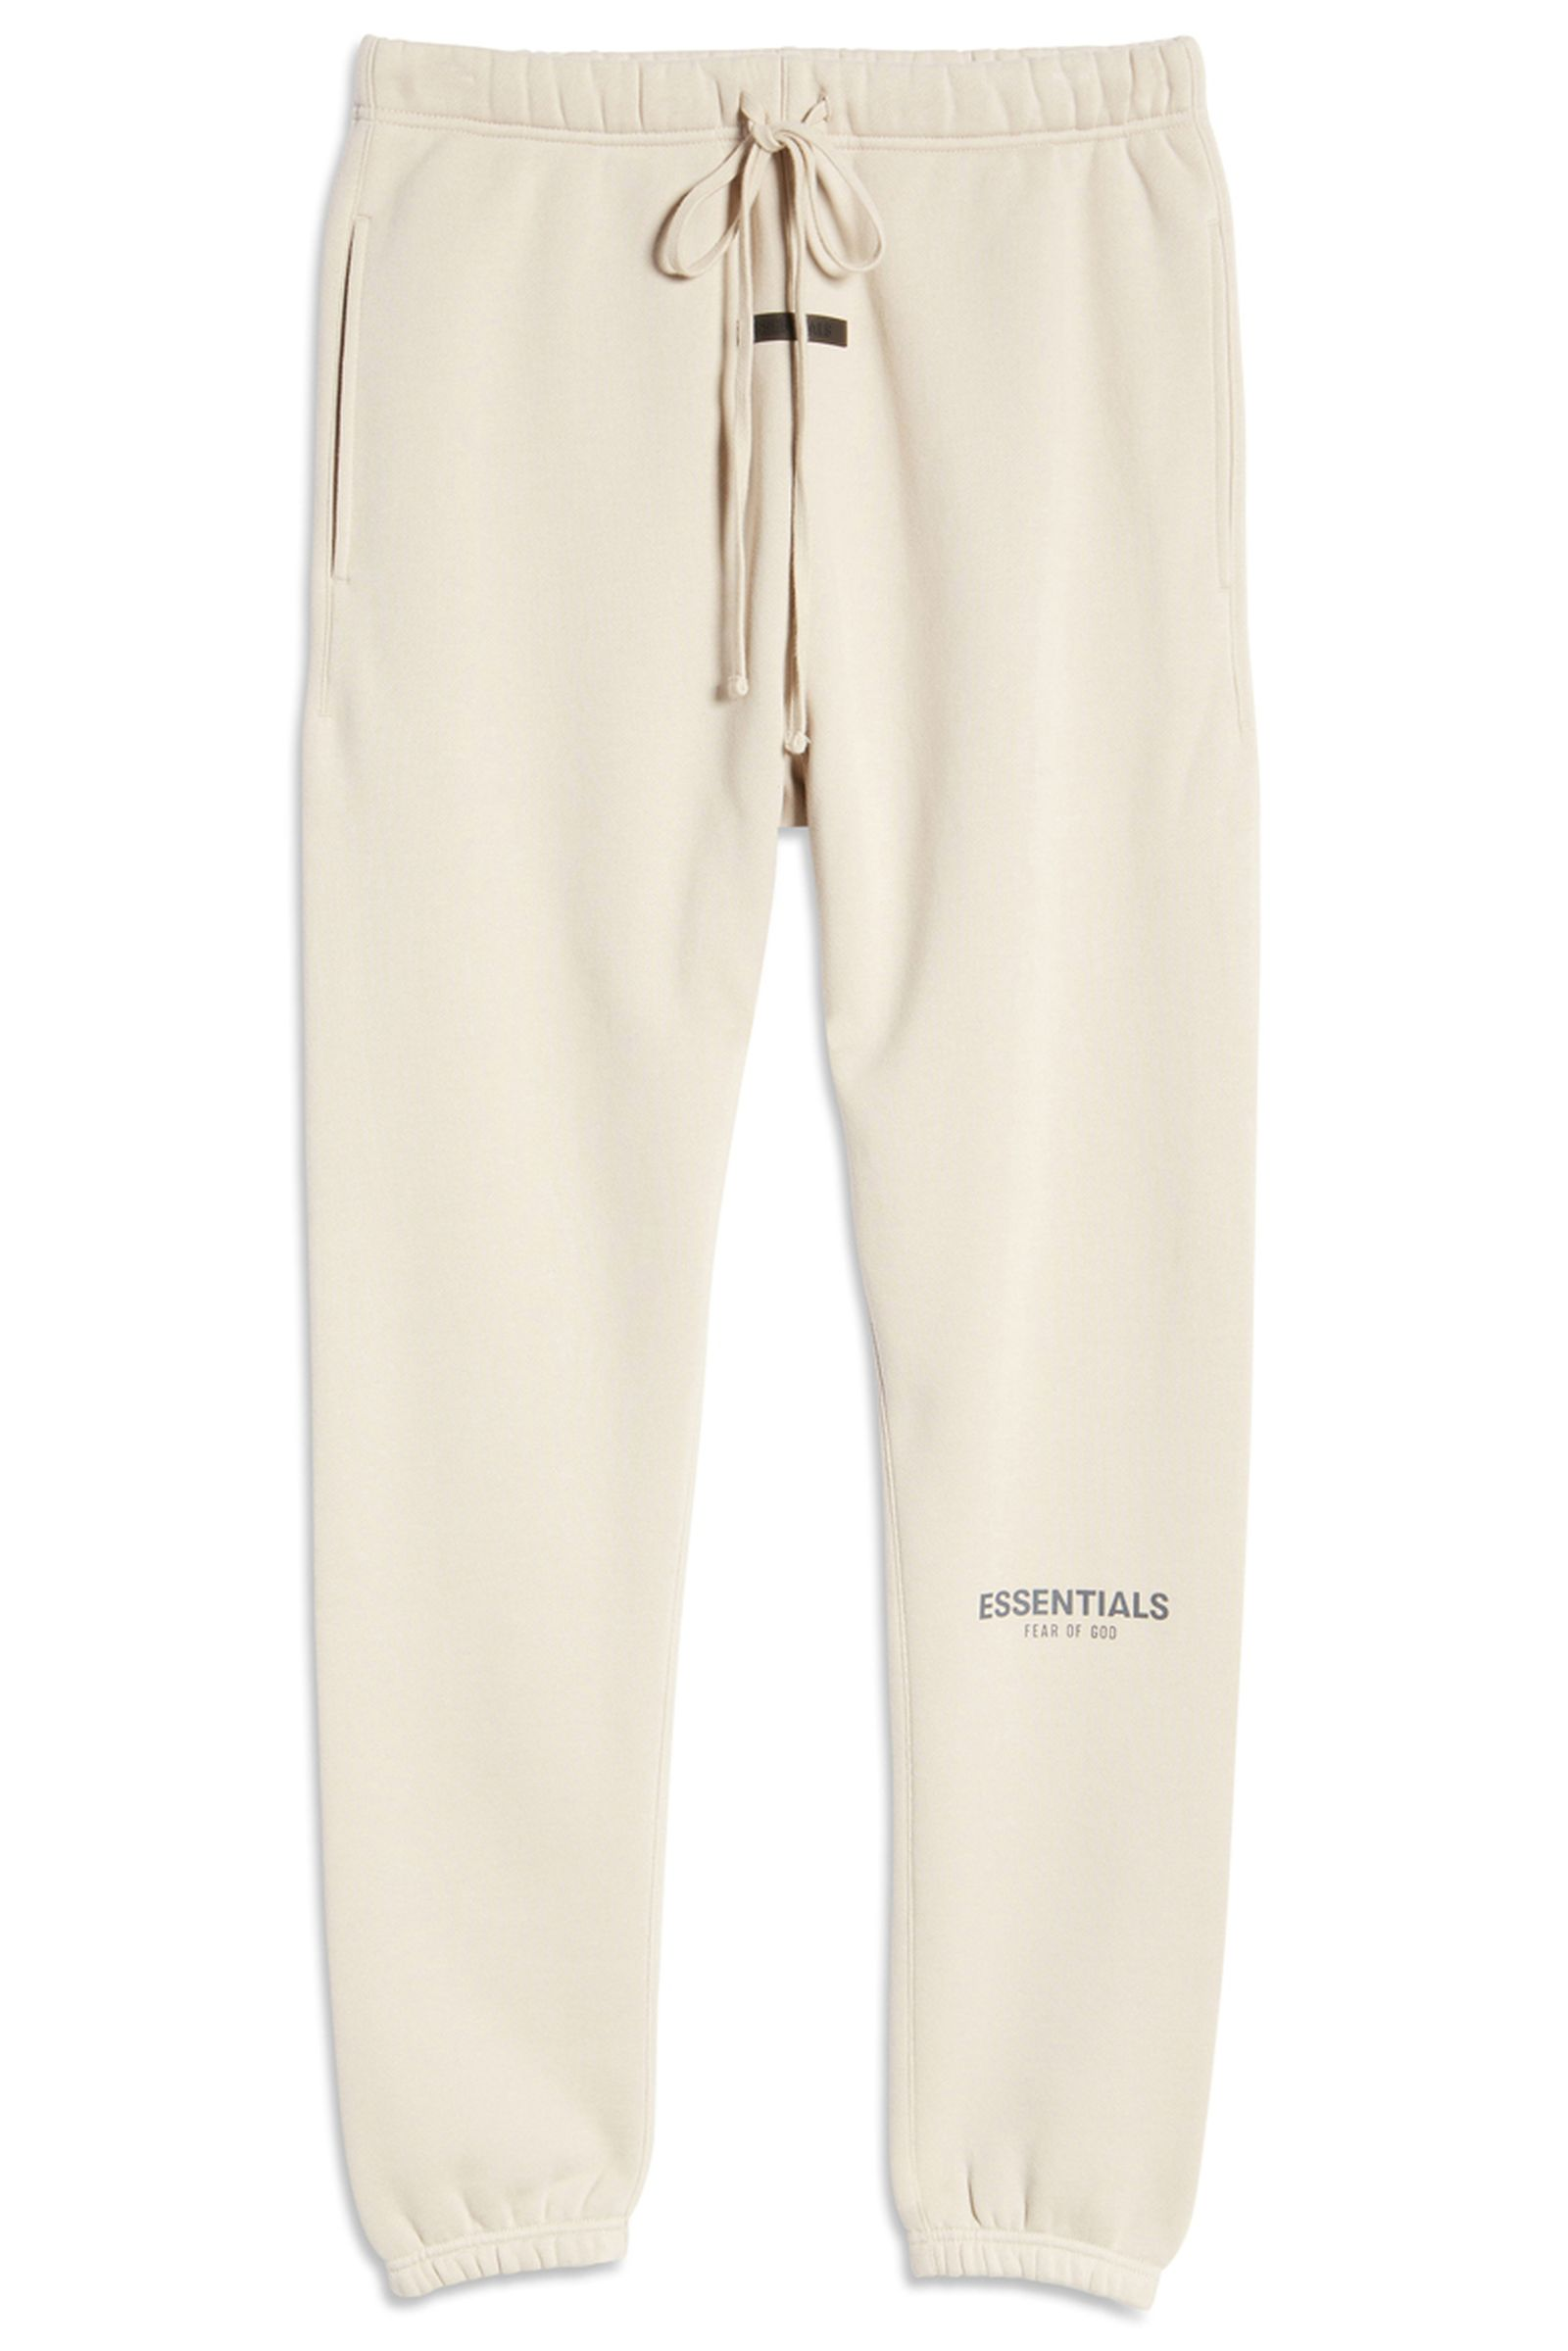 fear of god essentials nordstrom exclusive (17)